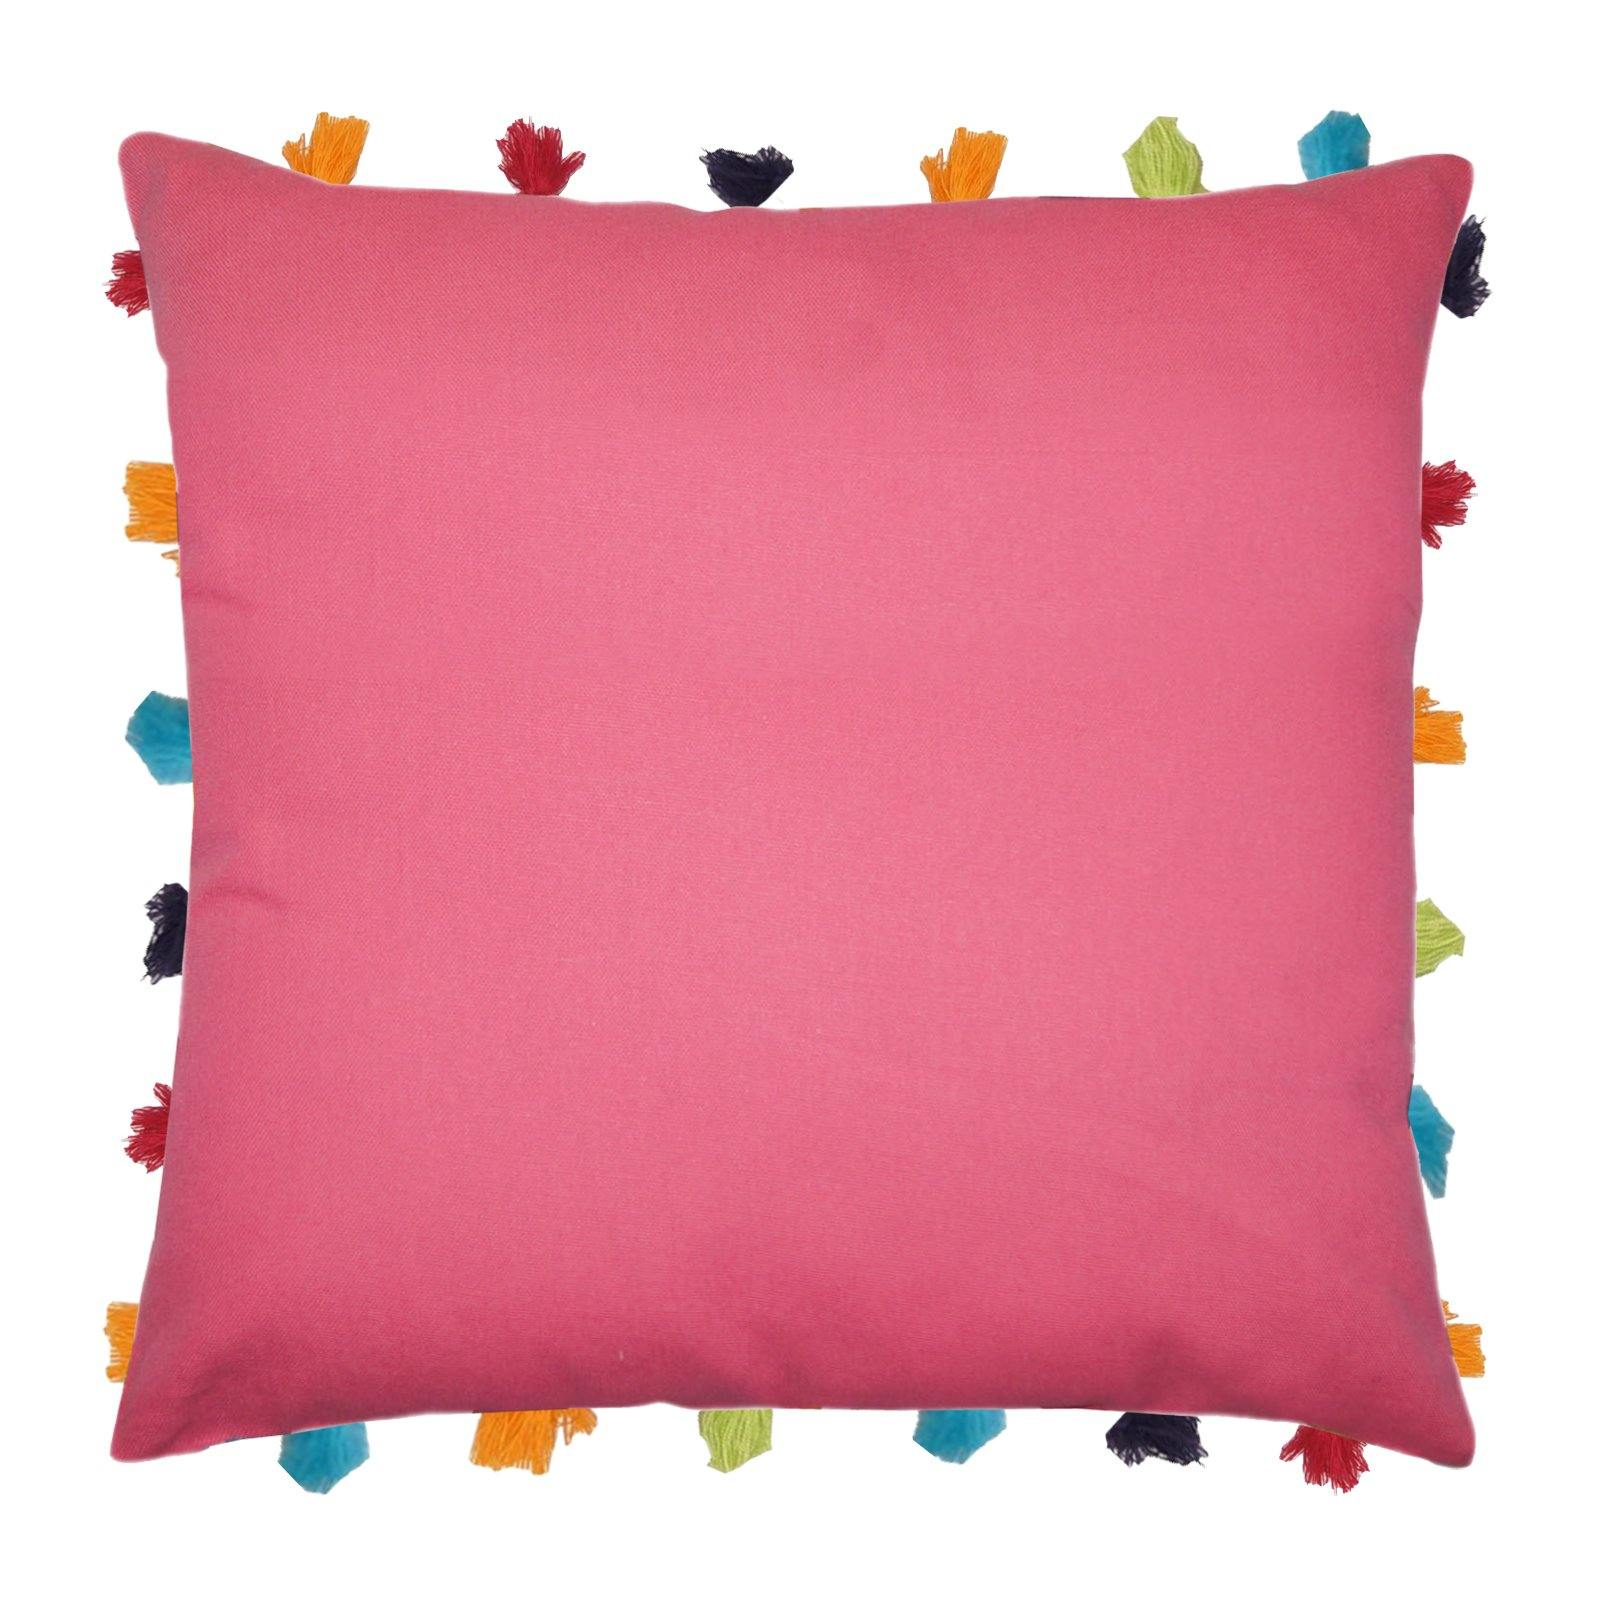 "Lushomes Rasberry Cushion Cover with Colorful tassels (Single pc, 18 x 18"") - Lushomes"